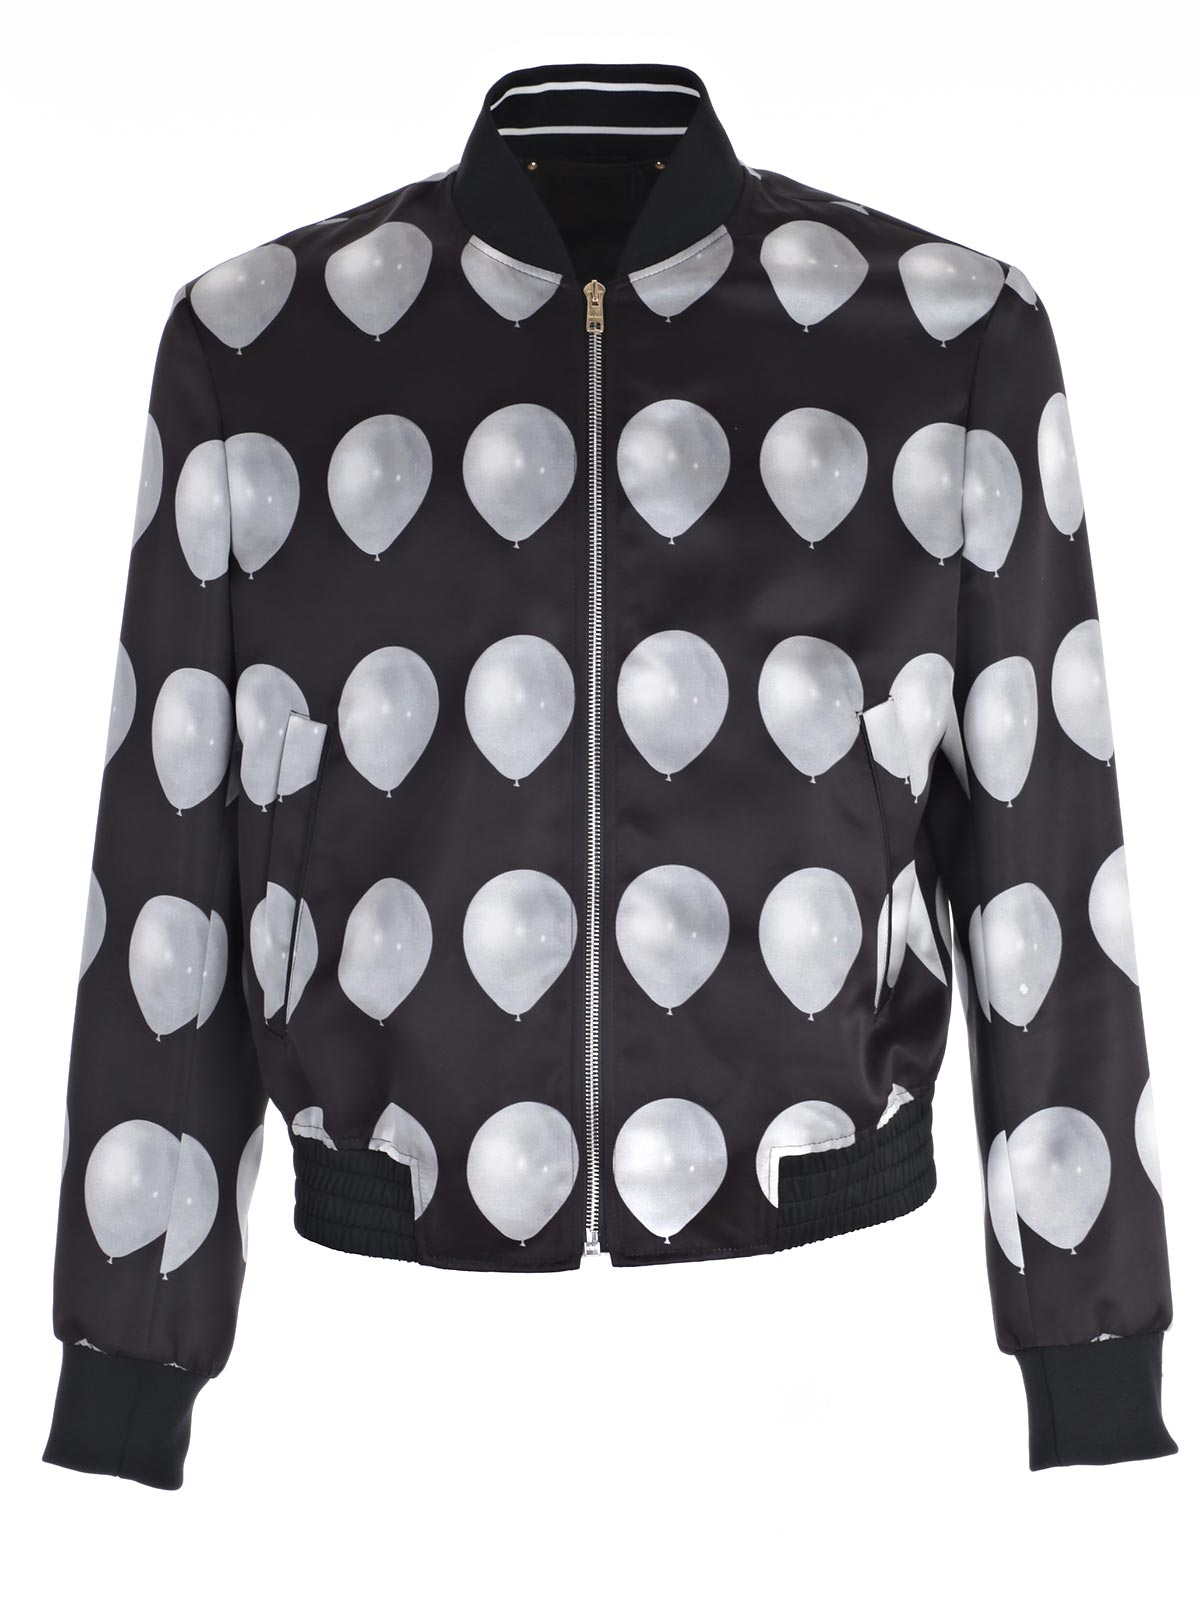 Picture of PAUL SMITH JACKET BOMBER STAMPA PALLONI